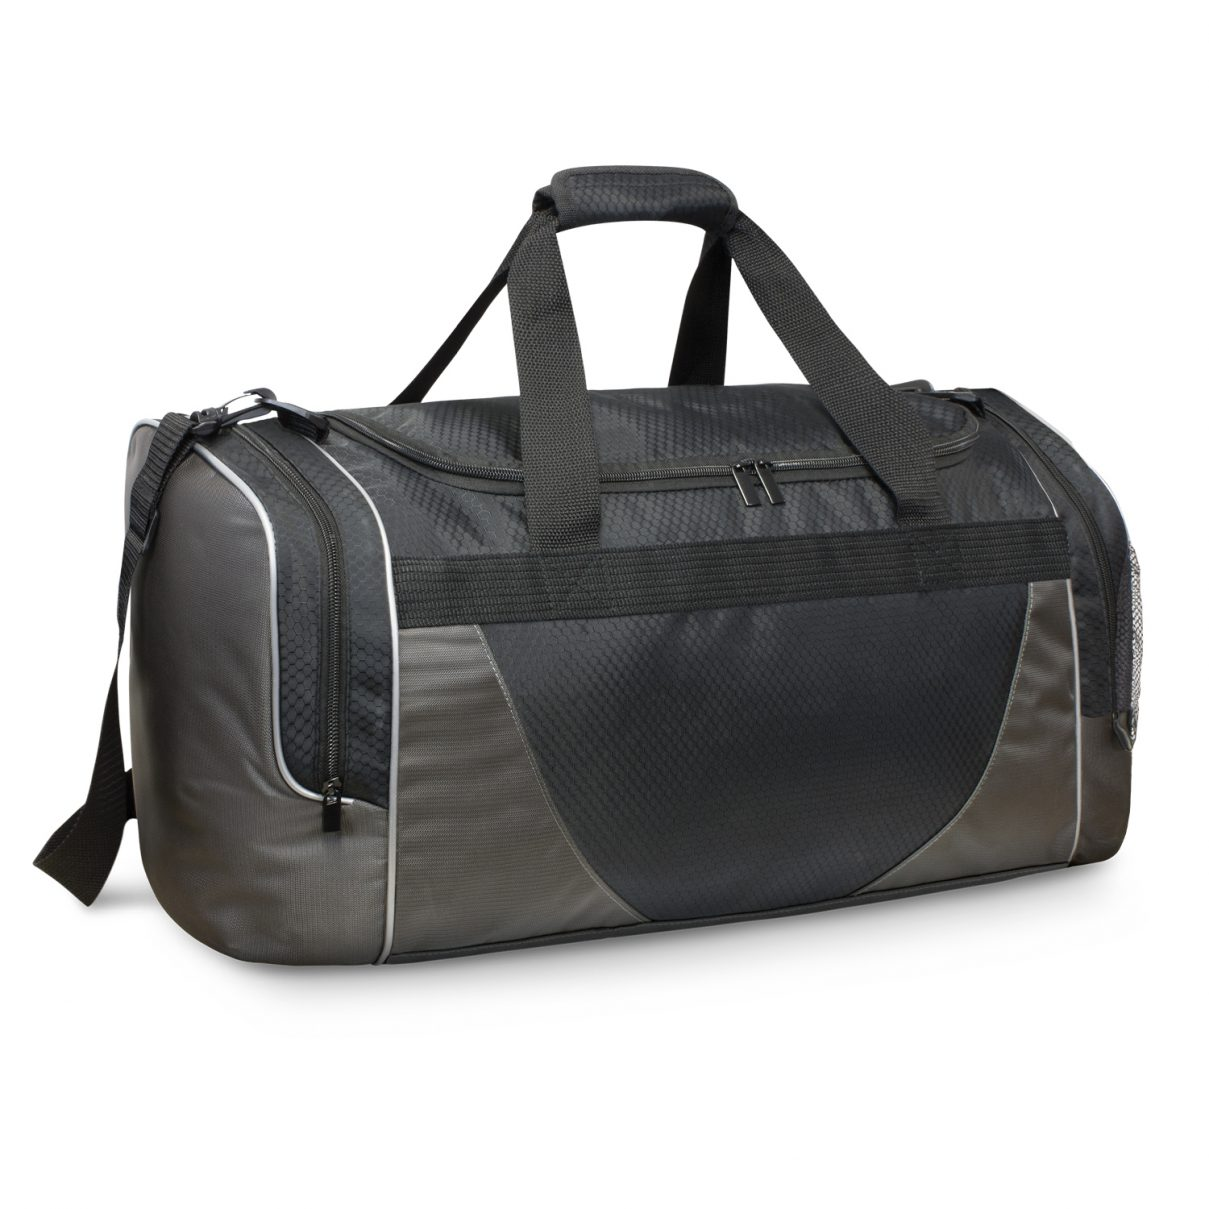 Excelsior Duffle Bag Bulk Supplier